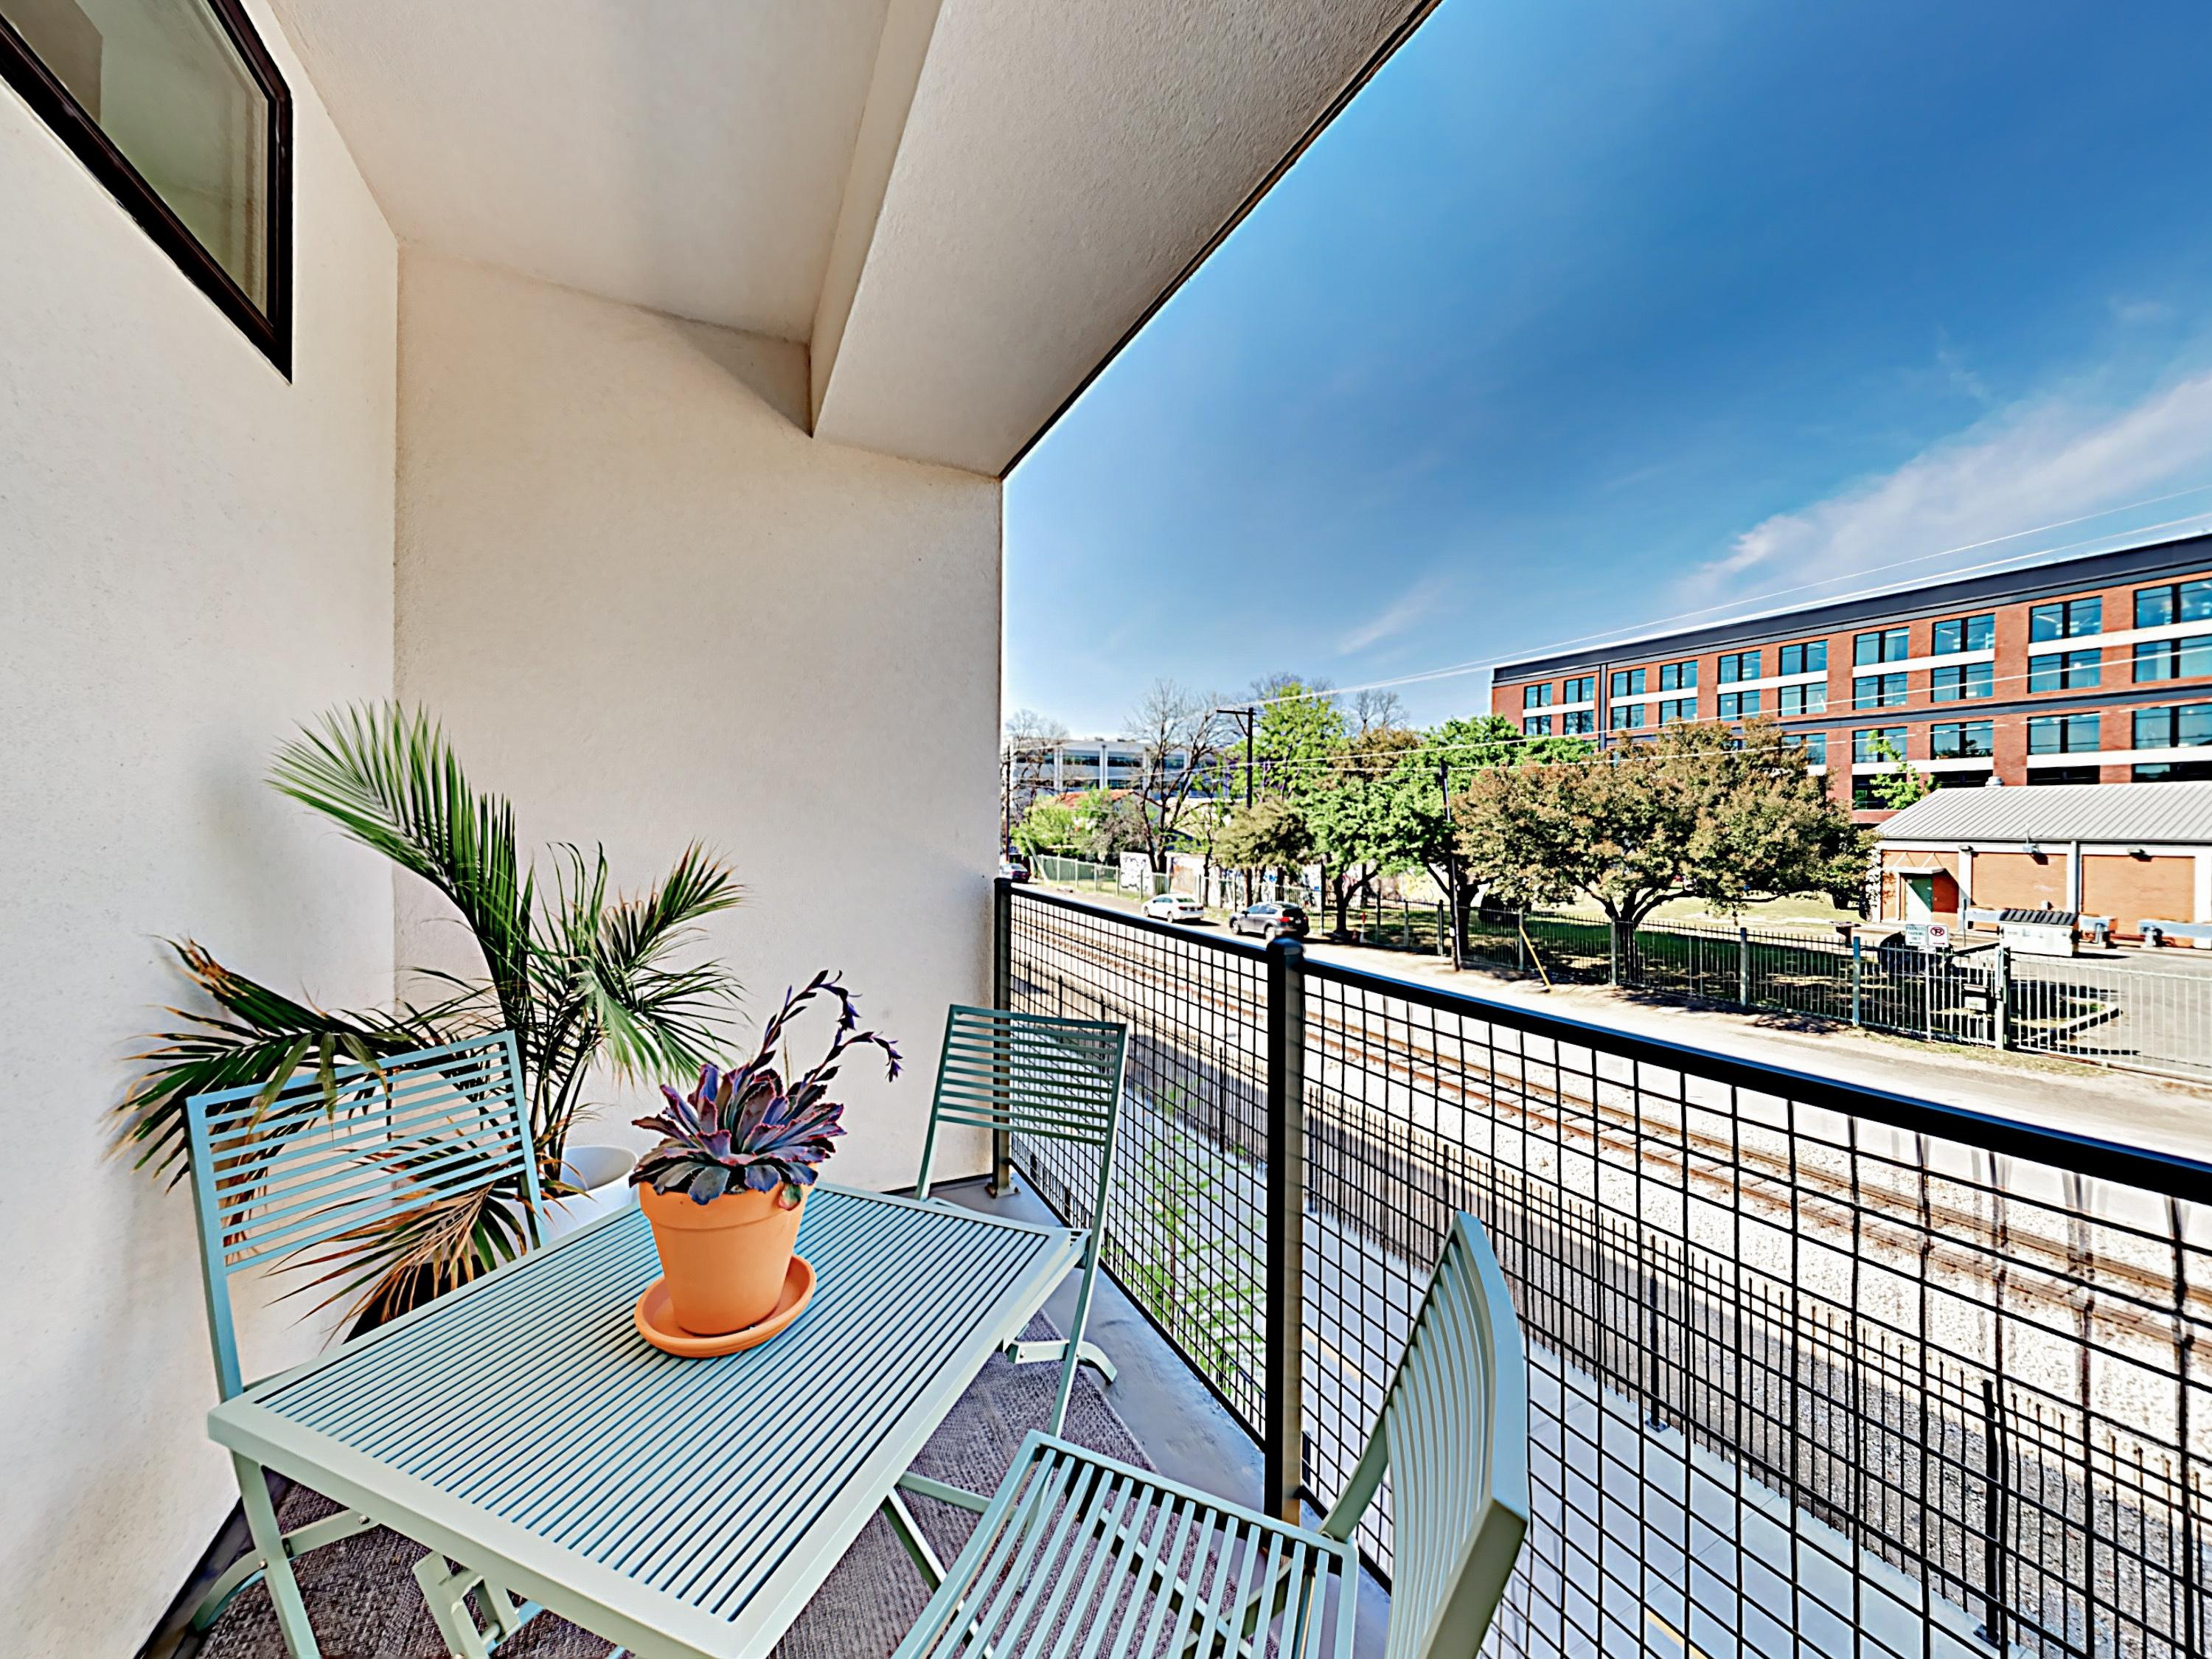 Enjoy the fresh air on your private balcony overlooking East 5th Street.